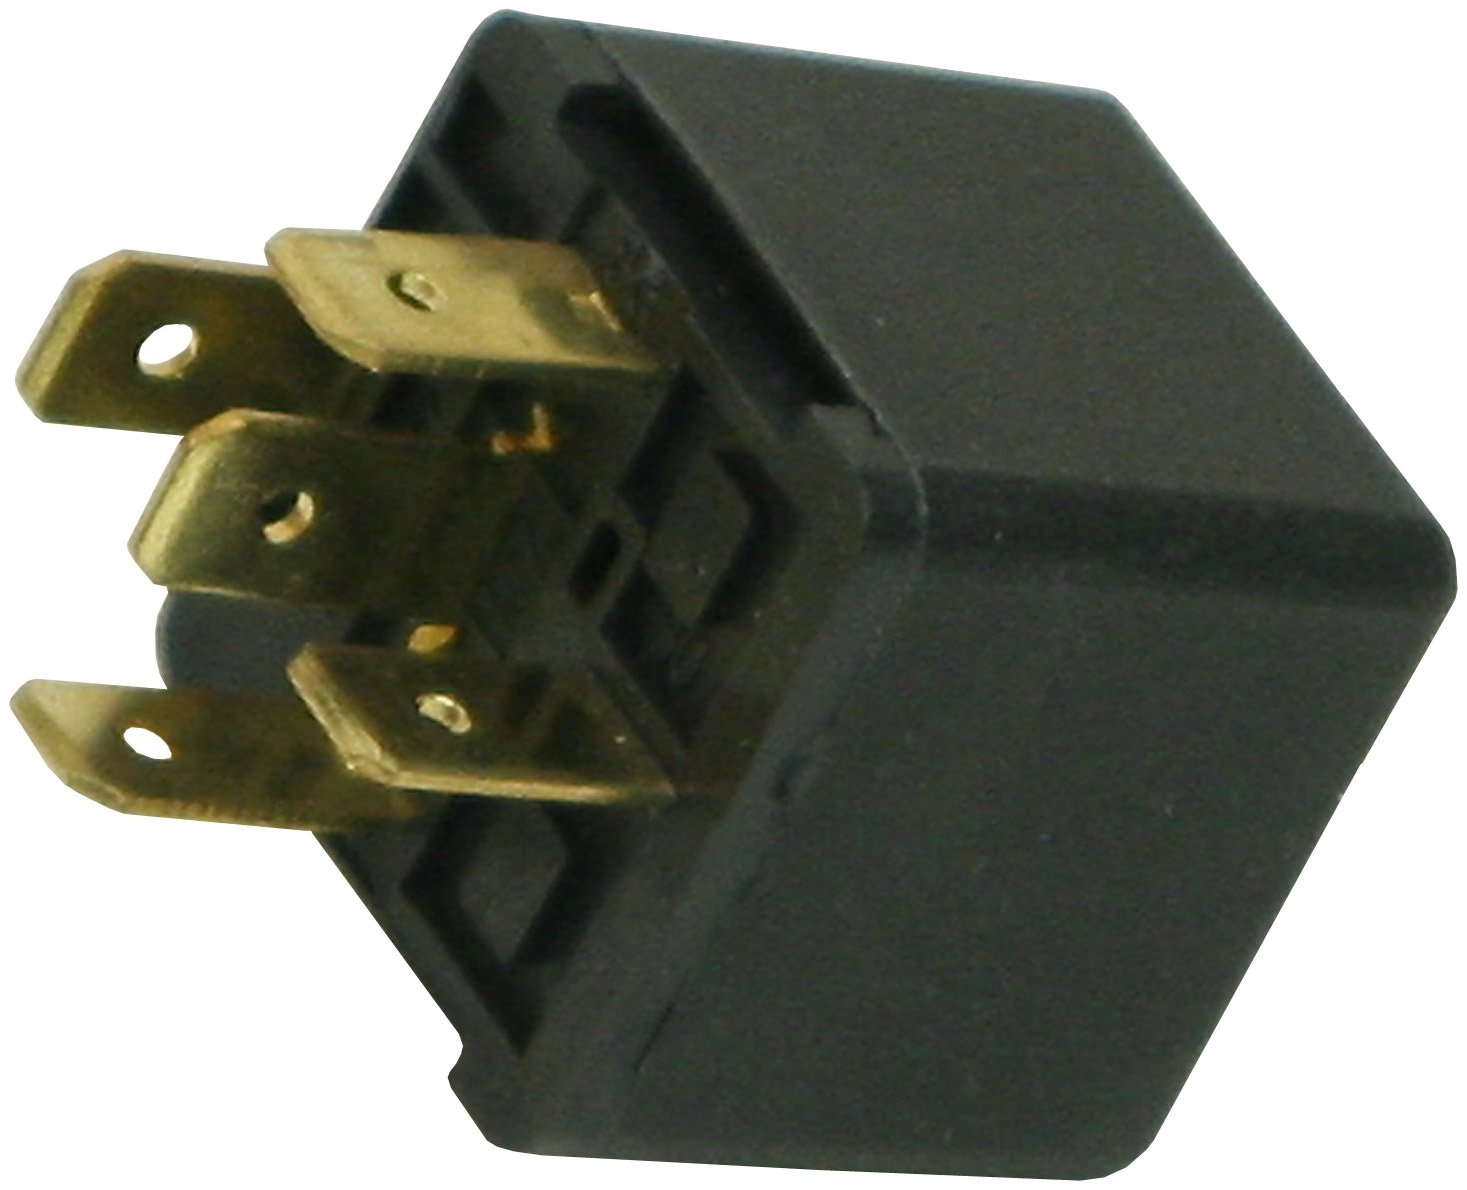 Beck Arnley 203-0175 Fuel Injection Relay